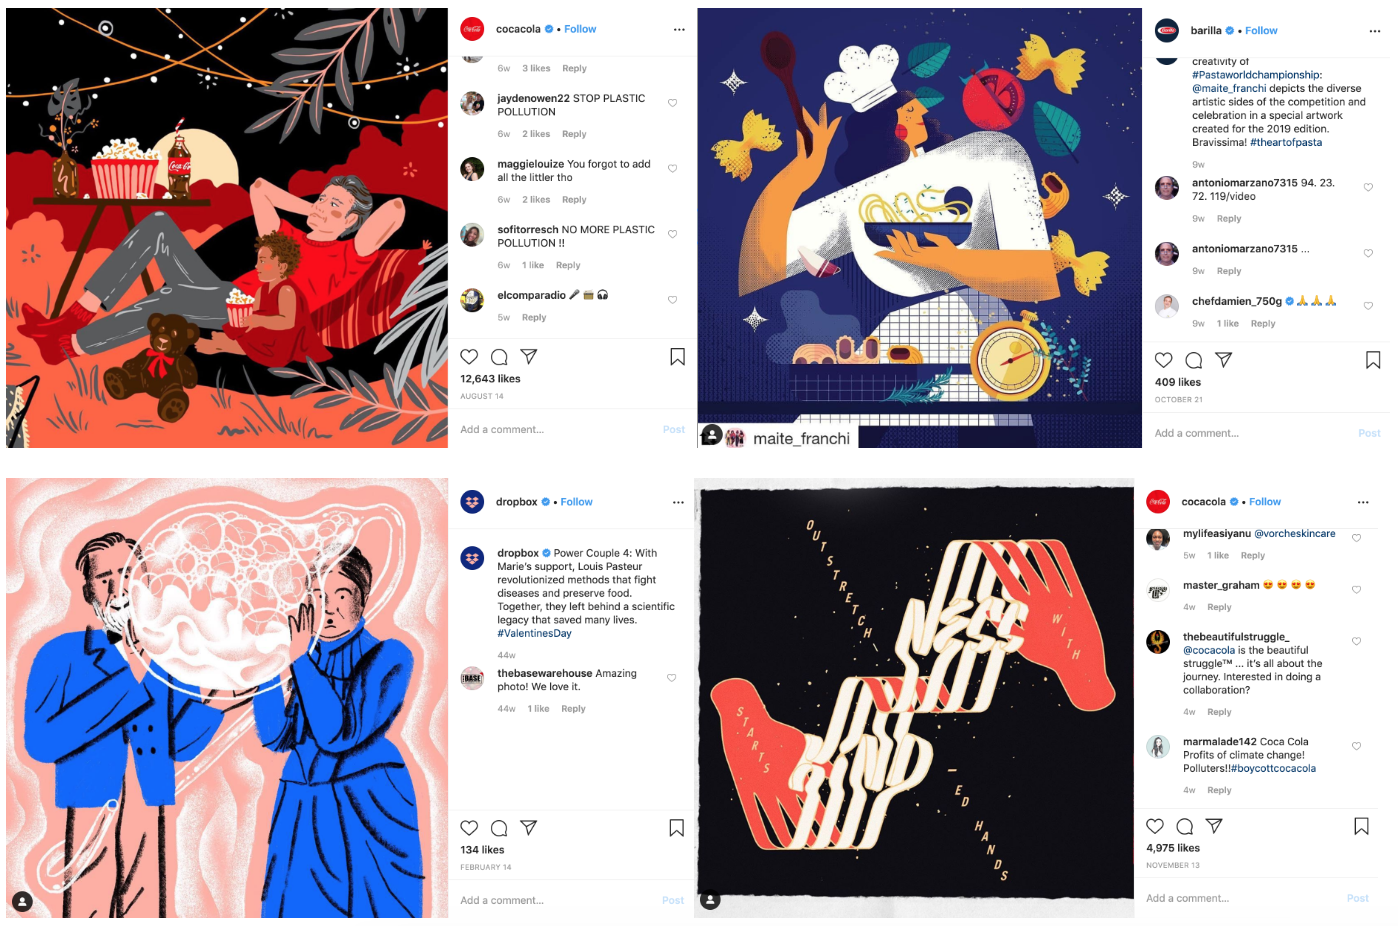 Abstract/dreamy illustrations social media trends instagram pages of Coca-Cola, Barilla and Dropbox